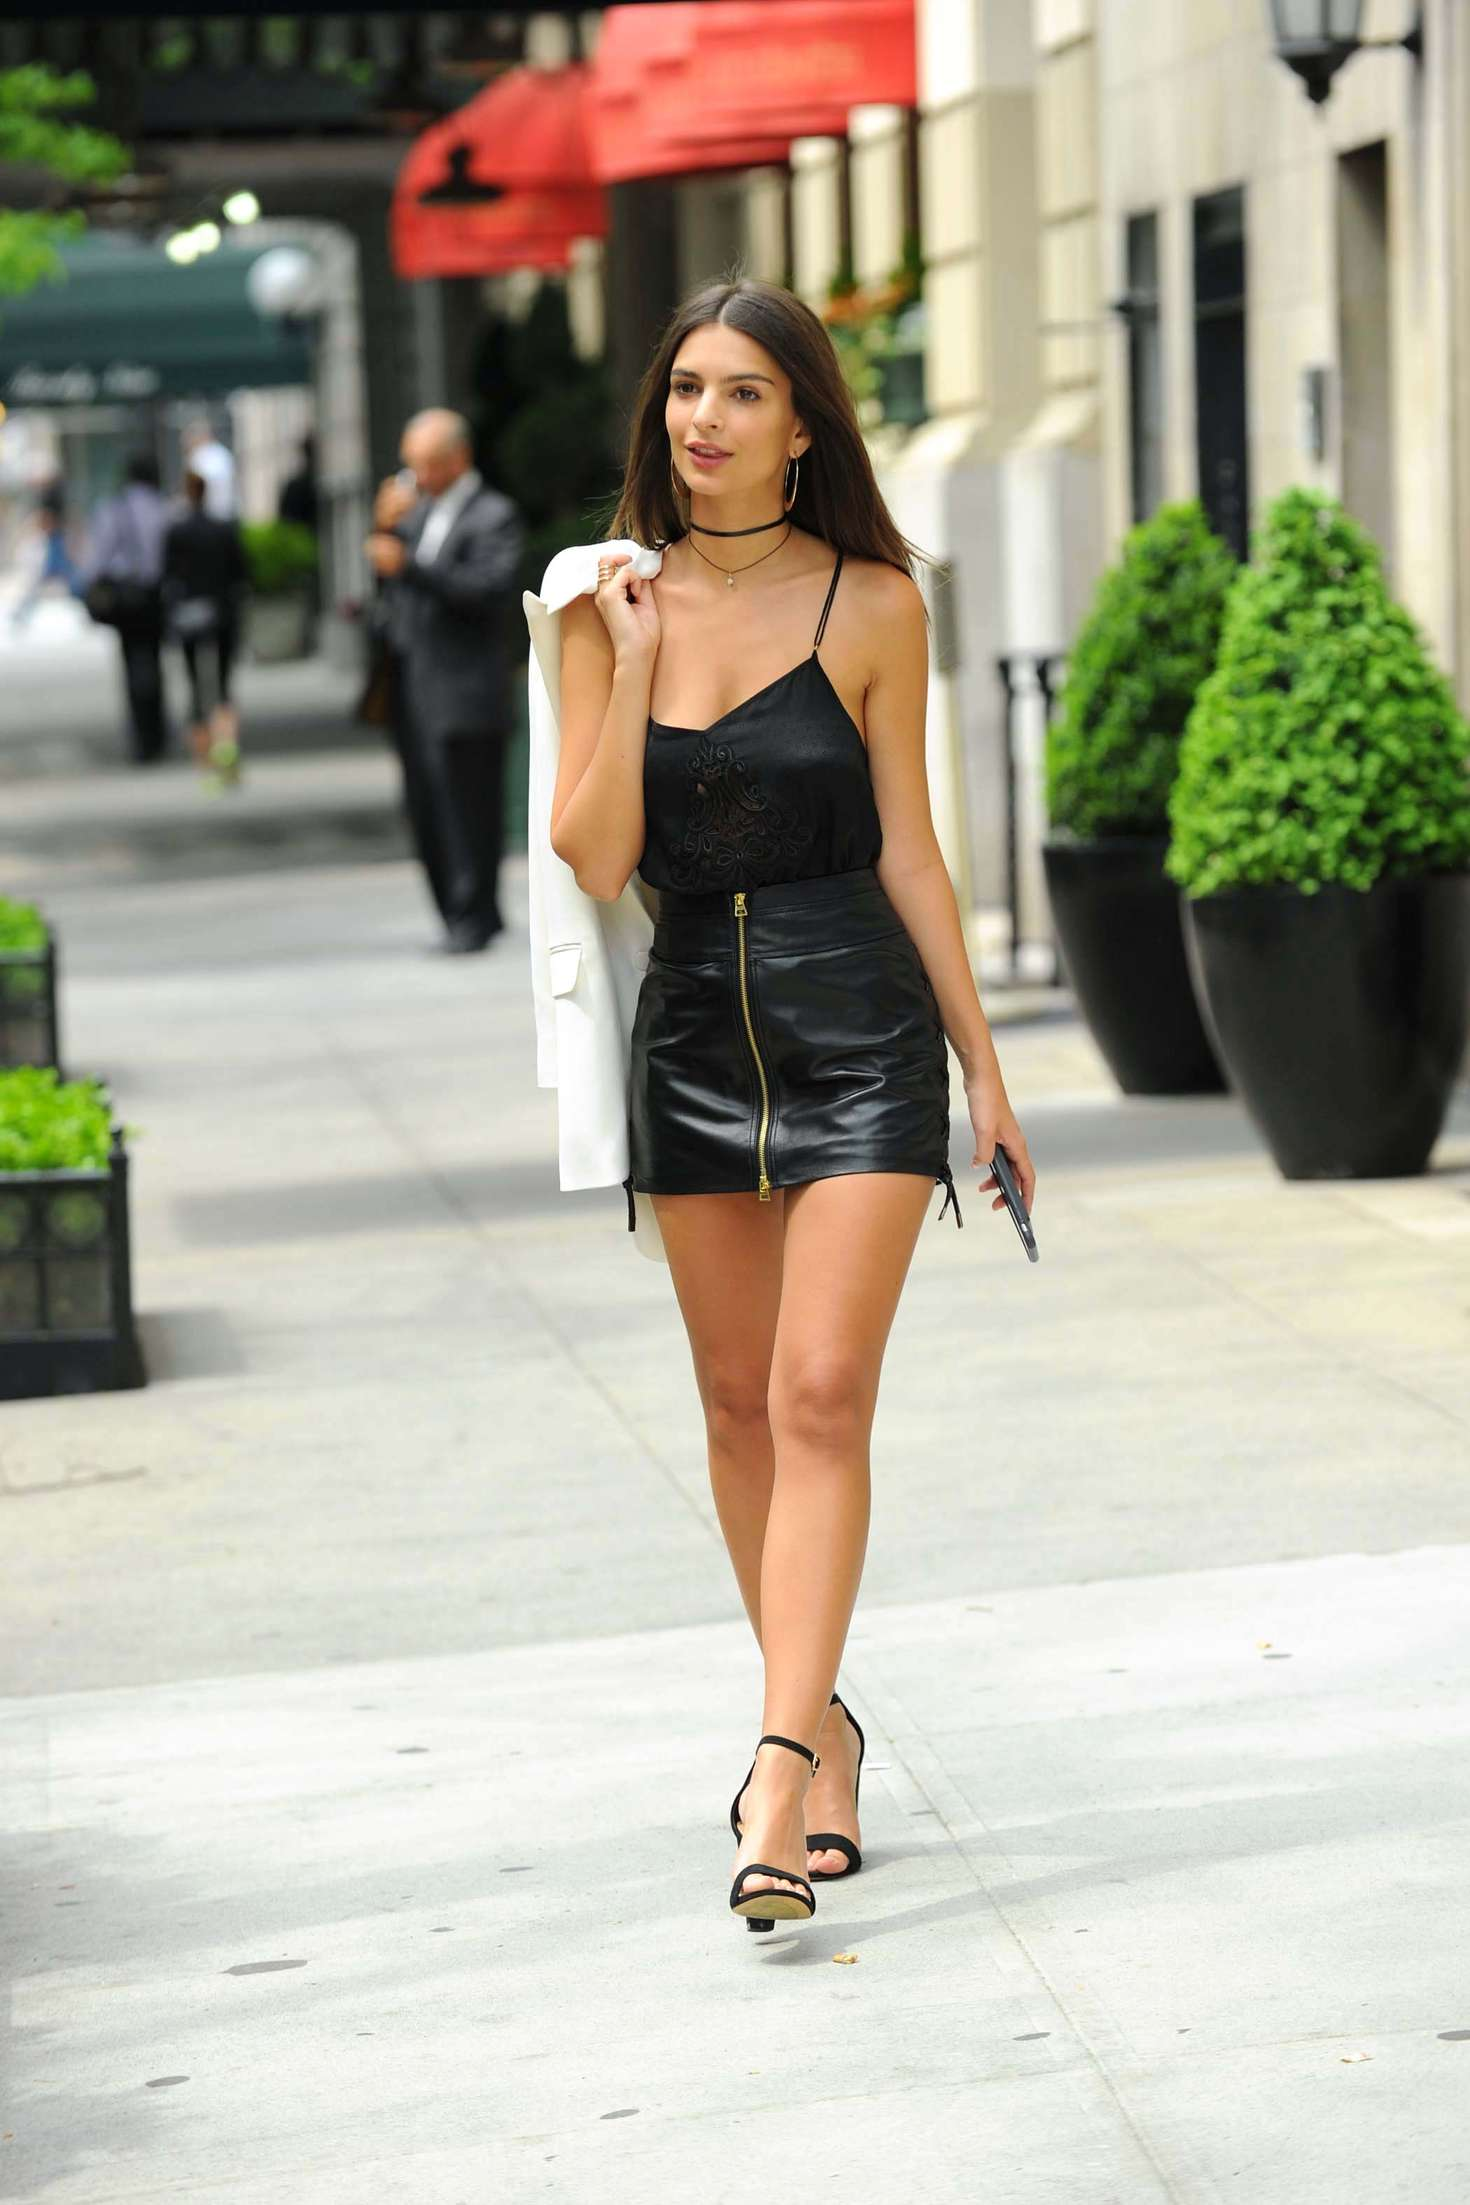 Women In Short Leather Skirts - Dress Ala